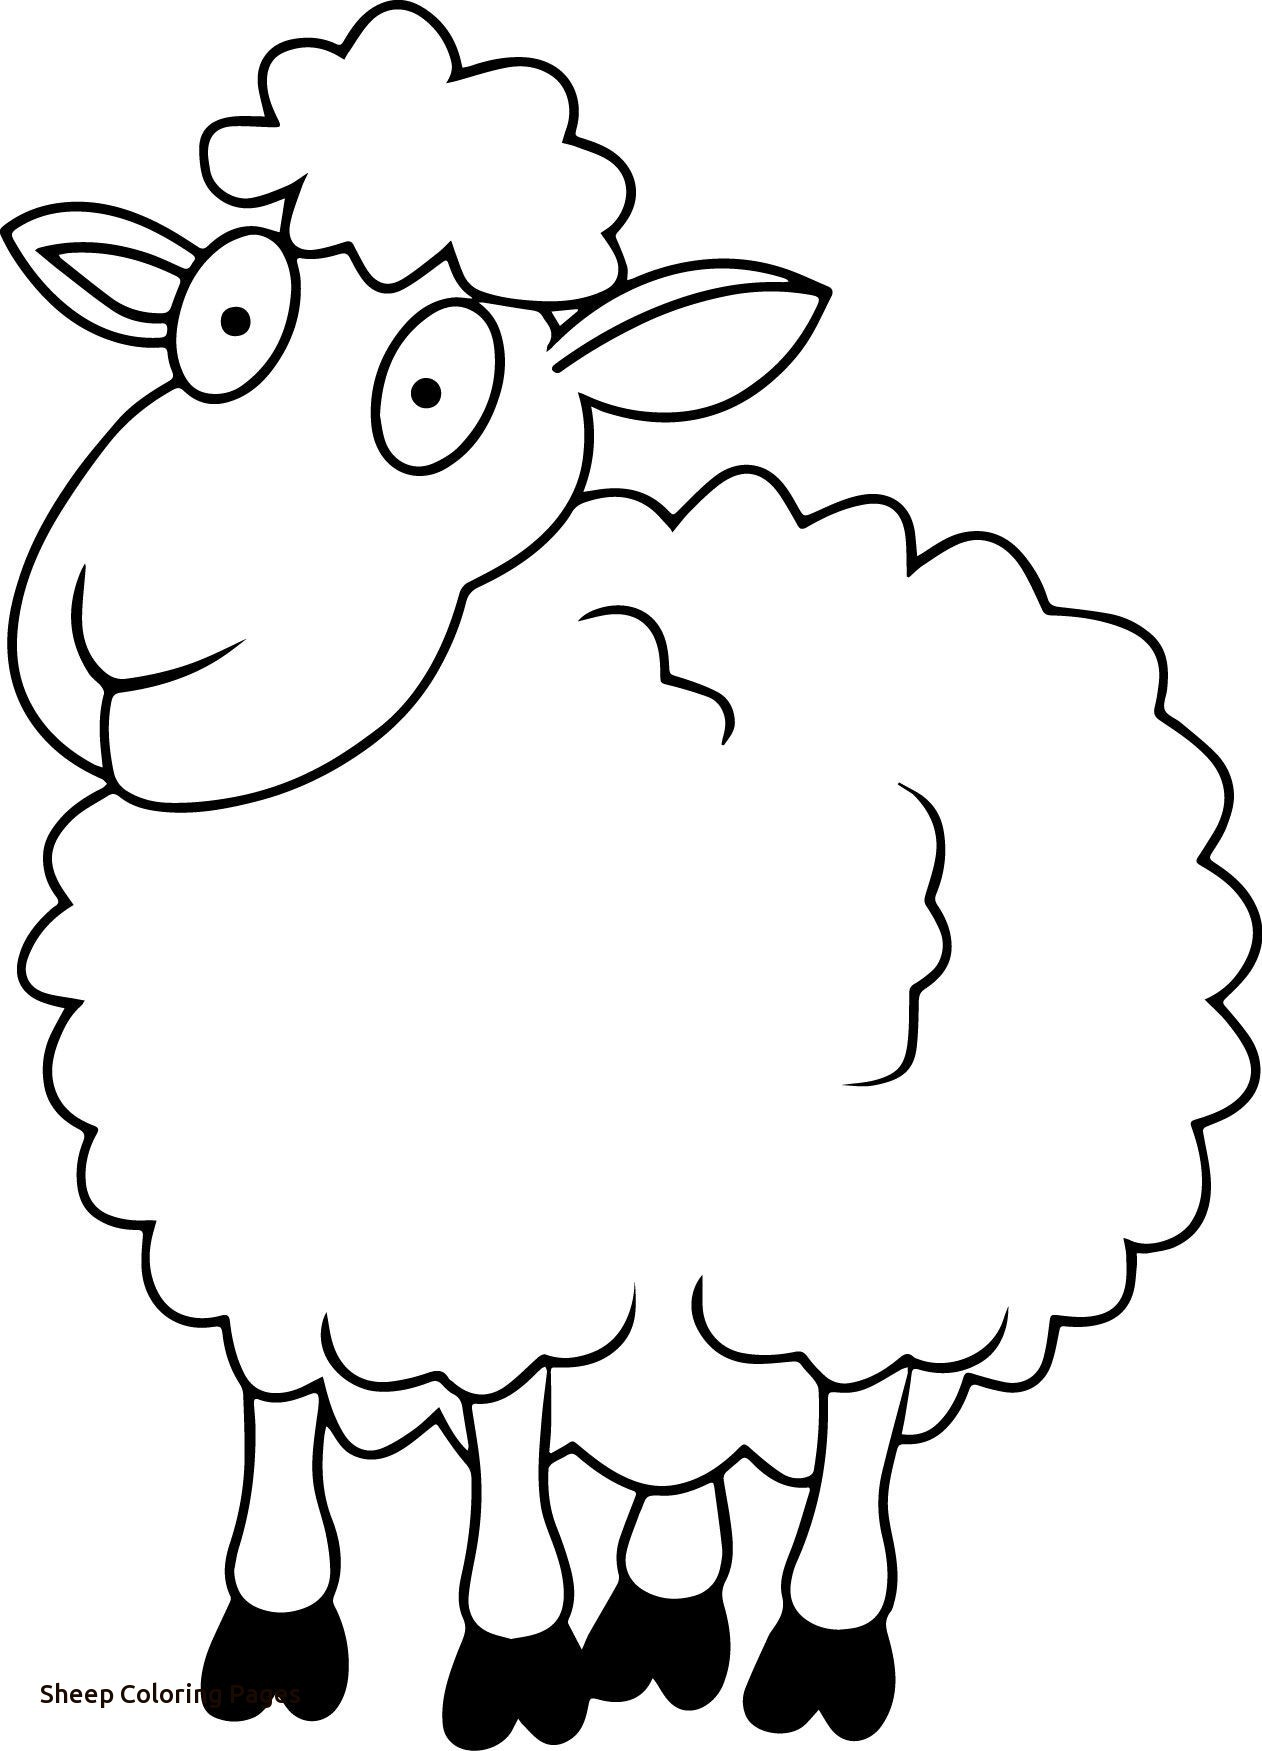 sheep colouring in sheep outline coloring page coloring home sheep colouring in